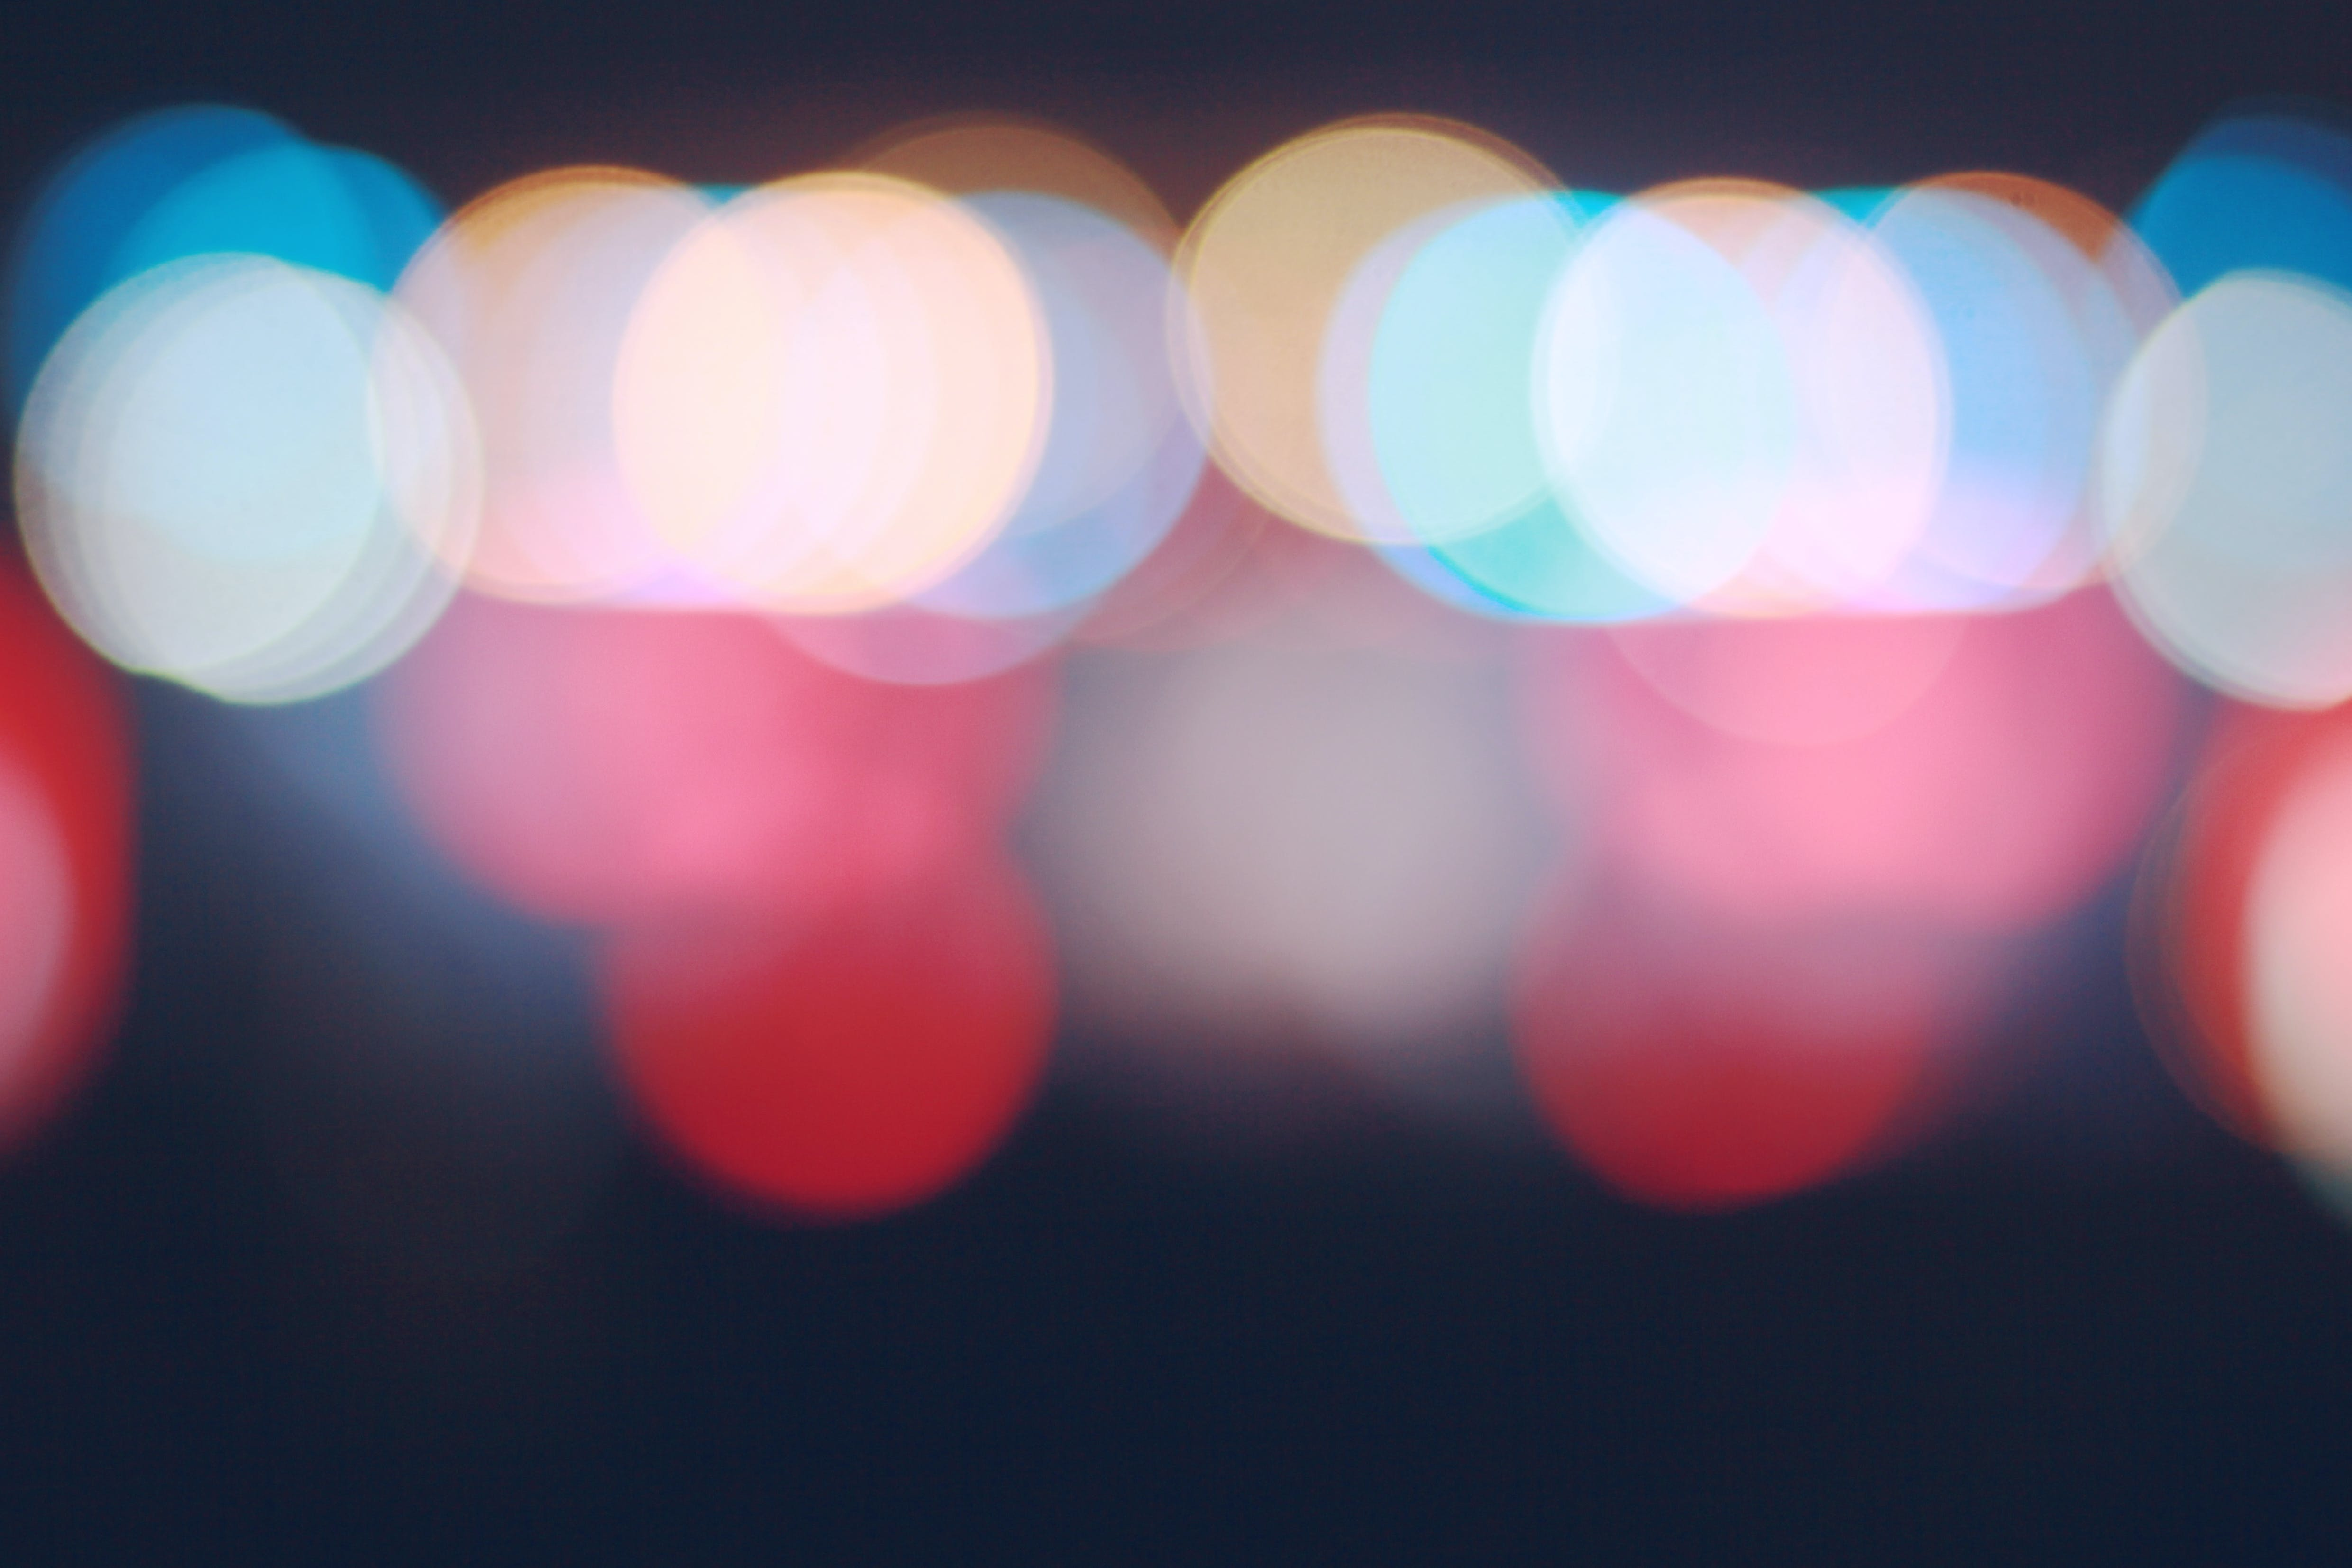 Free stock photo of blue, blur, citylights, red